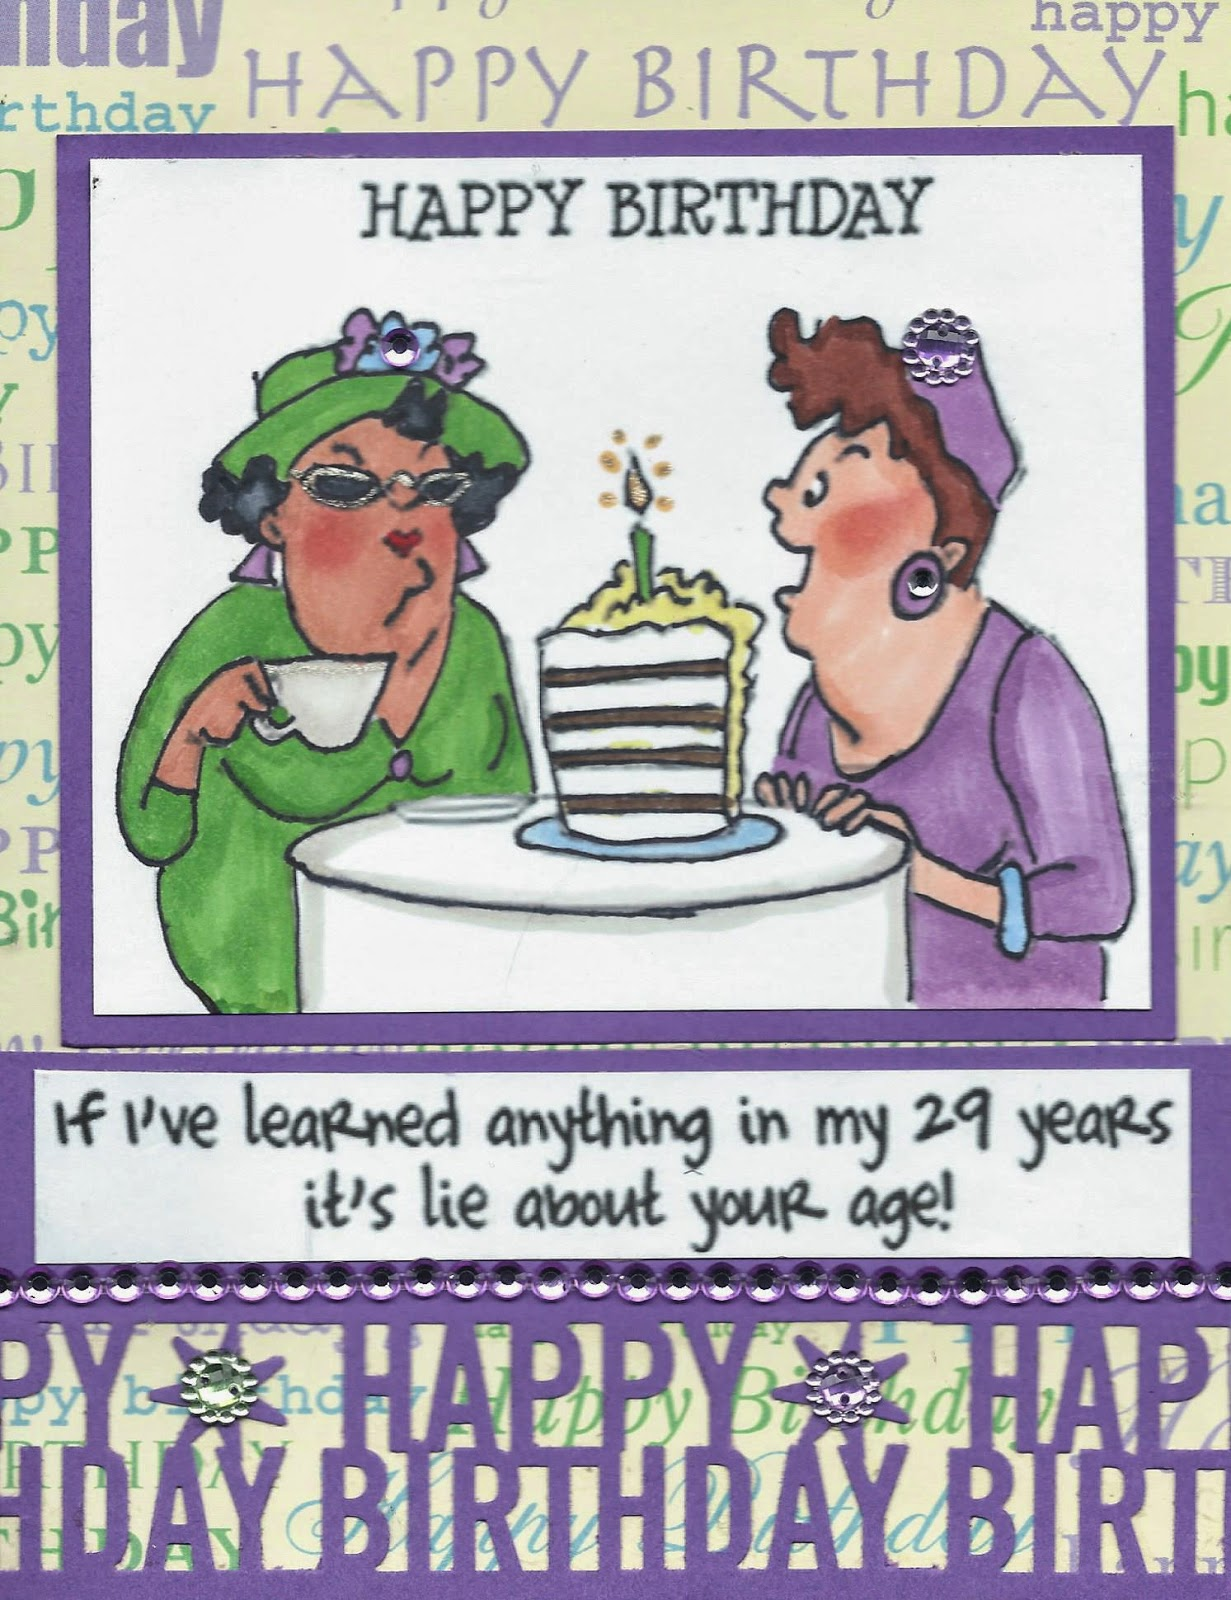 My Afrocentric Creations June 2014 – Old Friend Birthday Card